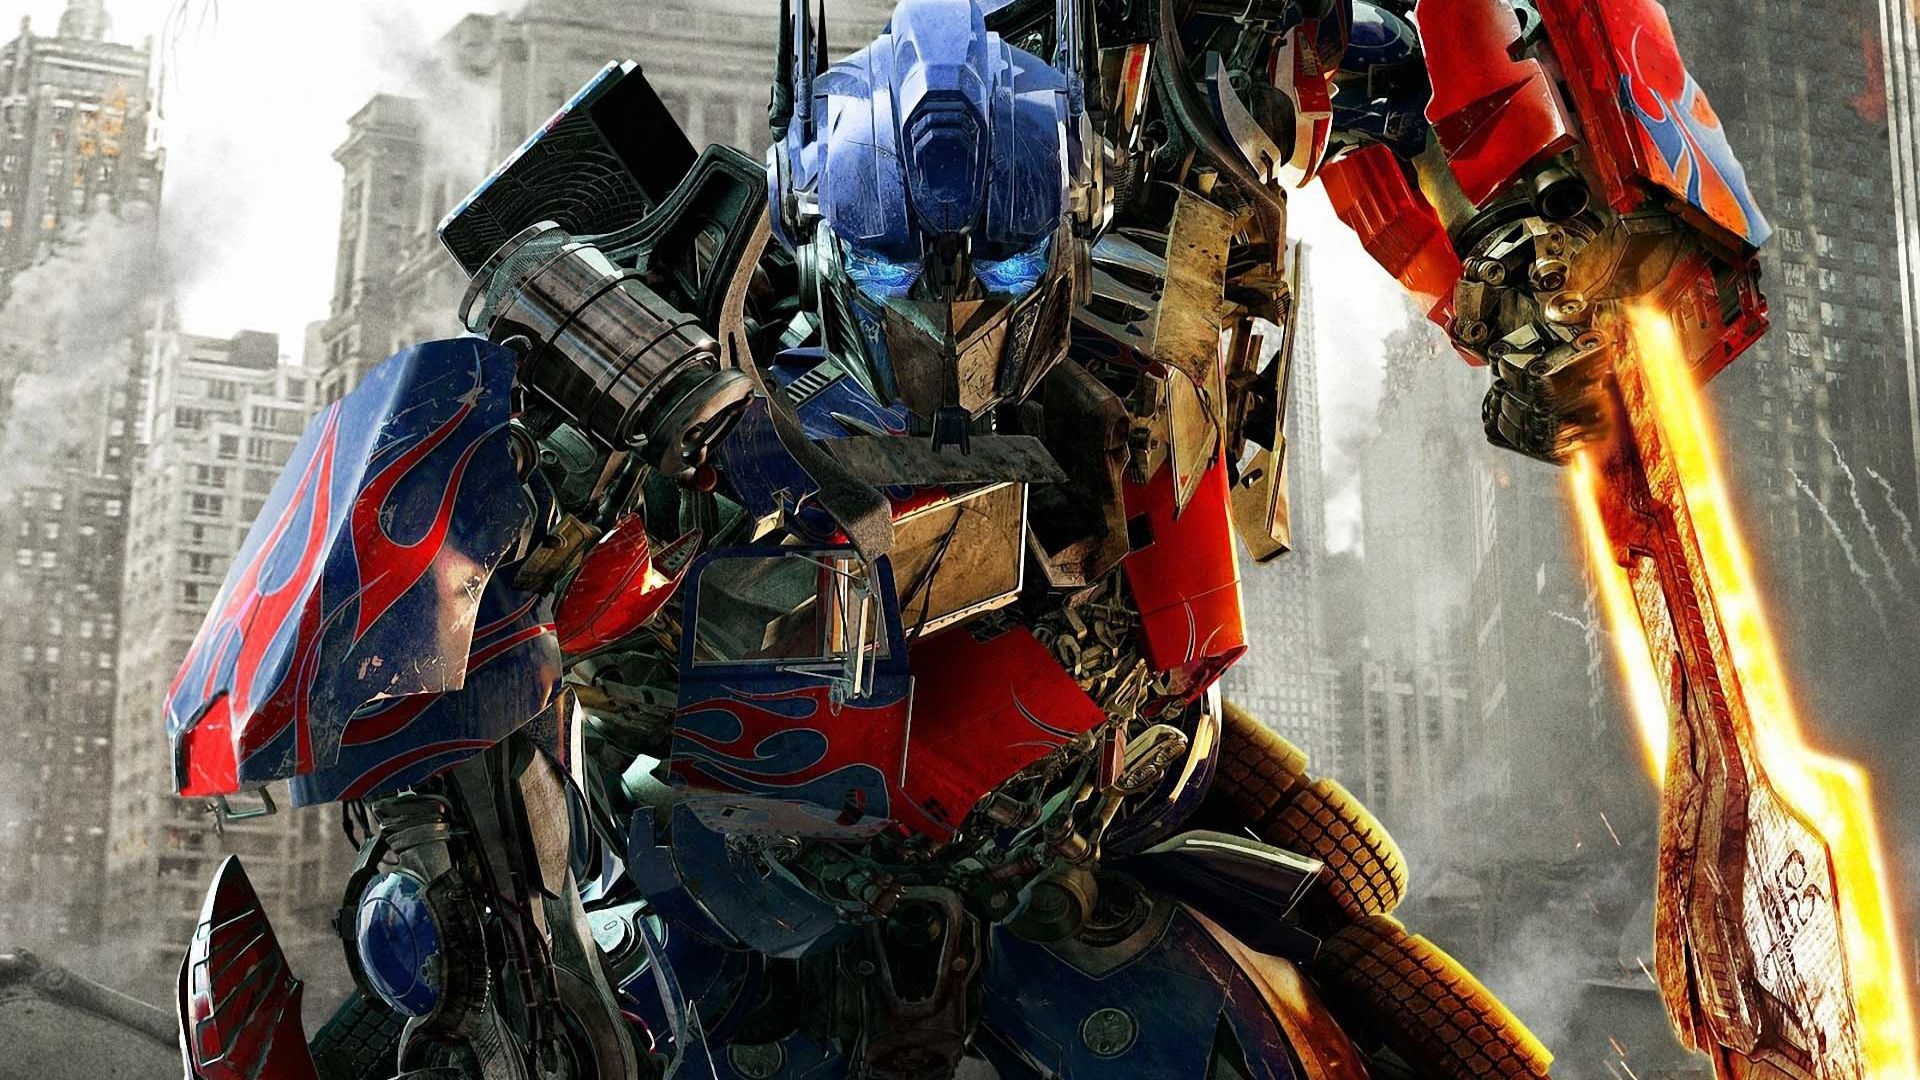 Optimus Prime Swords Movie Wallpaper